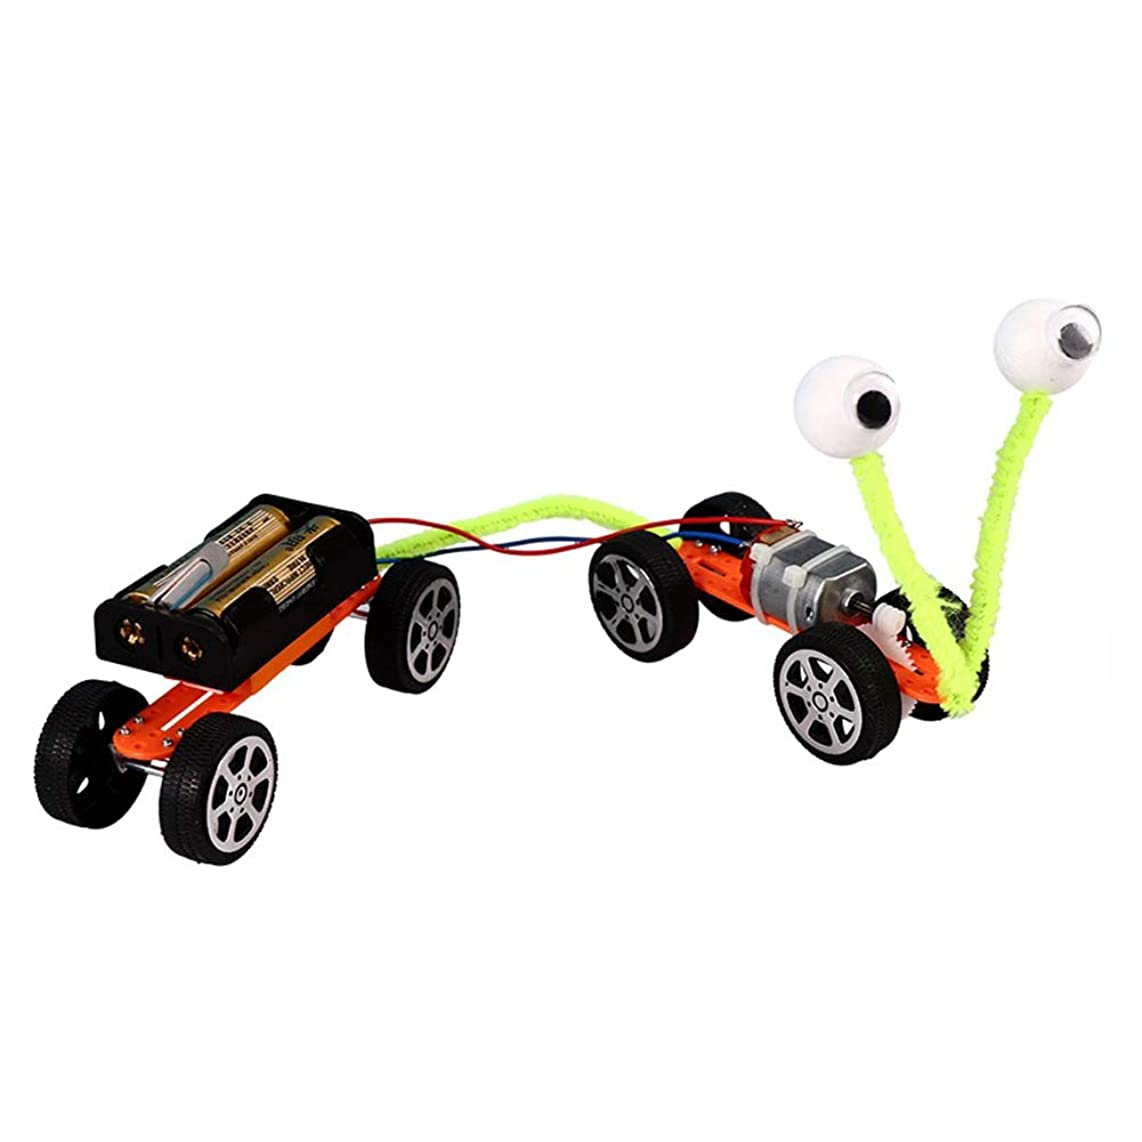 Faironly DIY Mini Motor Electric Car Toy Kits Physics Electrical Circuits Circuit Puzzle Toy Gear[Two Cars]